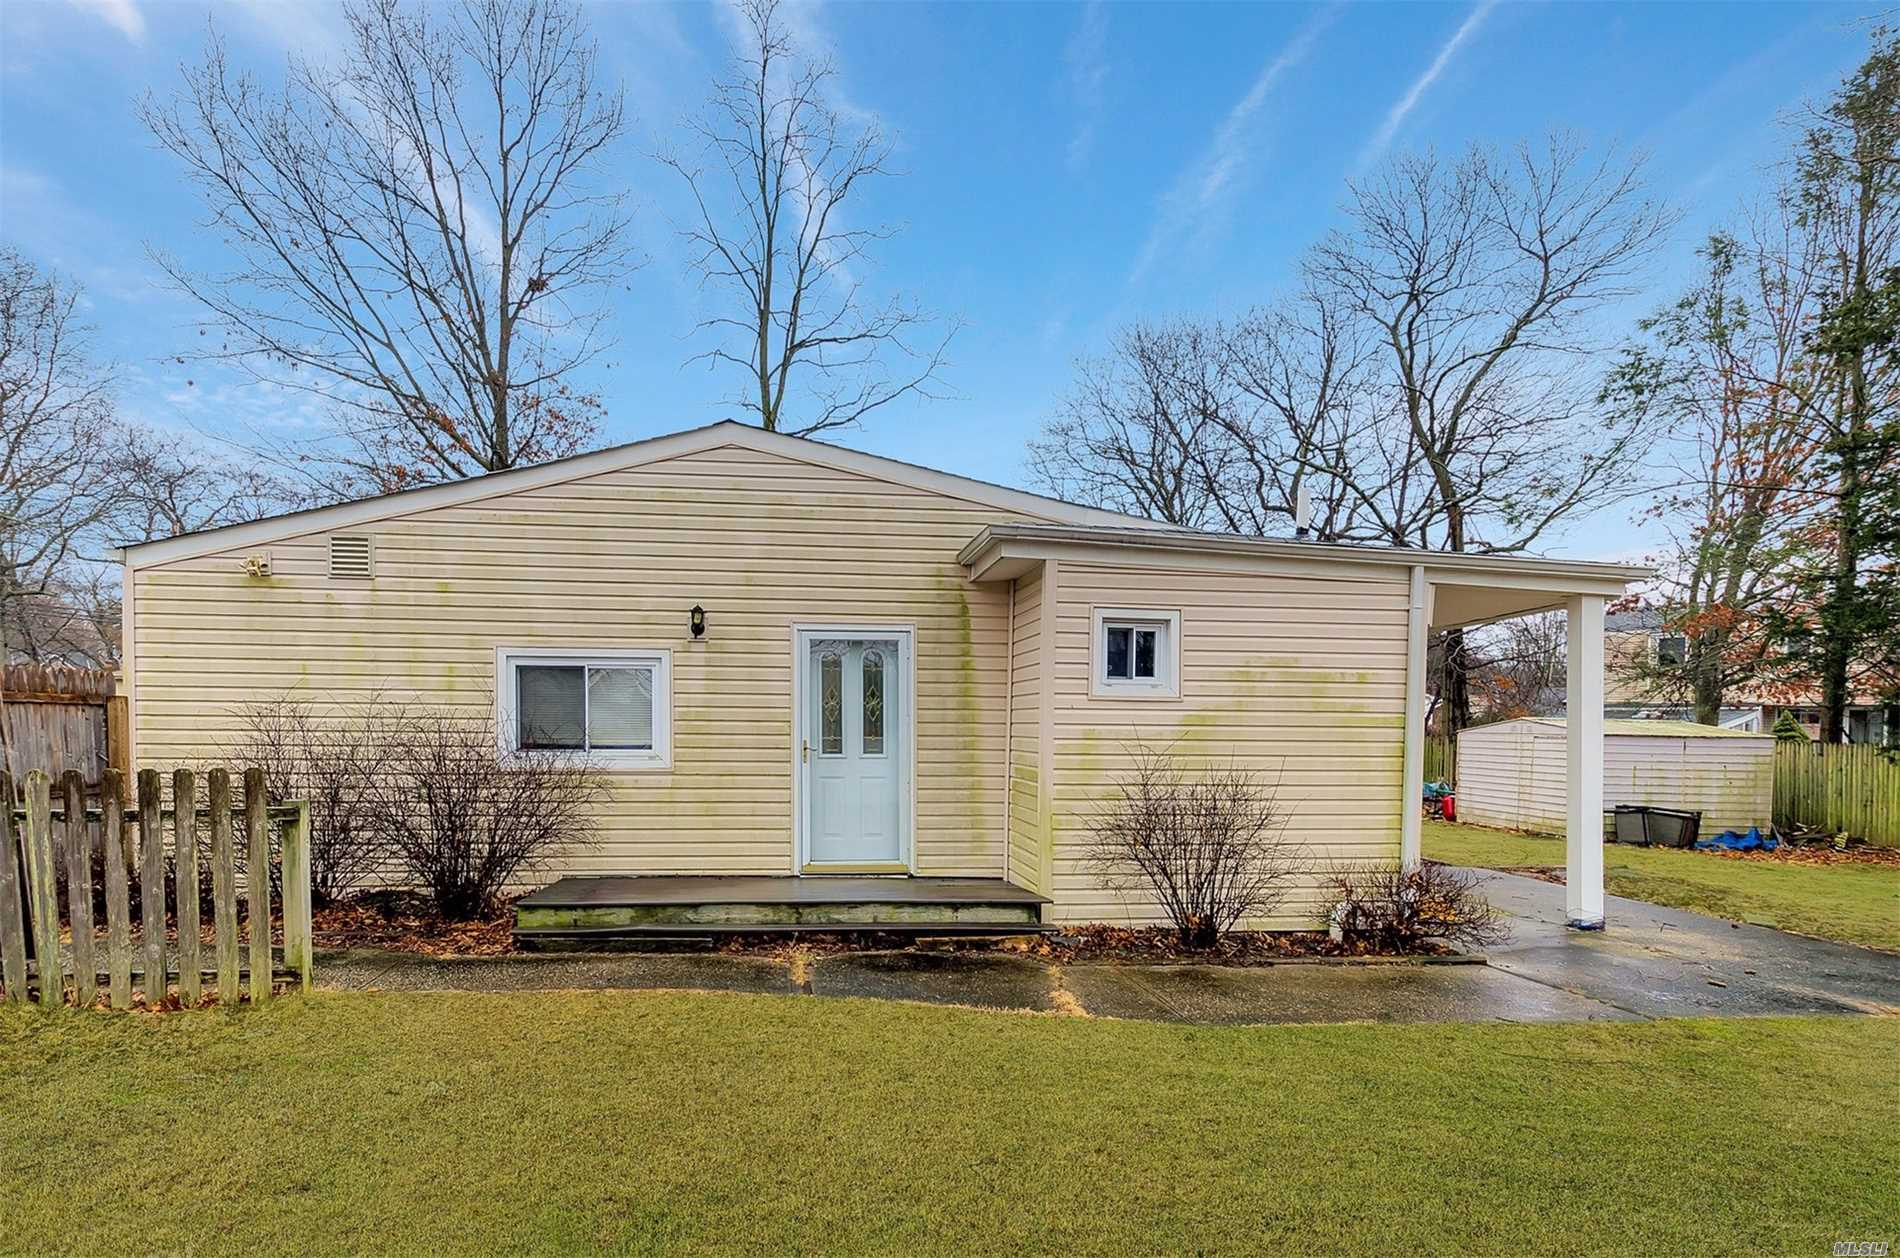 Magnificent Ranch On Dead End Street Open Floor Plan Recessed Lighting And Large Bedroom Beautiful Enormous Kitchen With Lots Of Cabinet And Counter Space Large Side Yard Part Unfinished Basement With Outside Entrance Why Rent When You Can Own? Great Investment Property